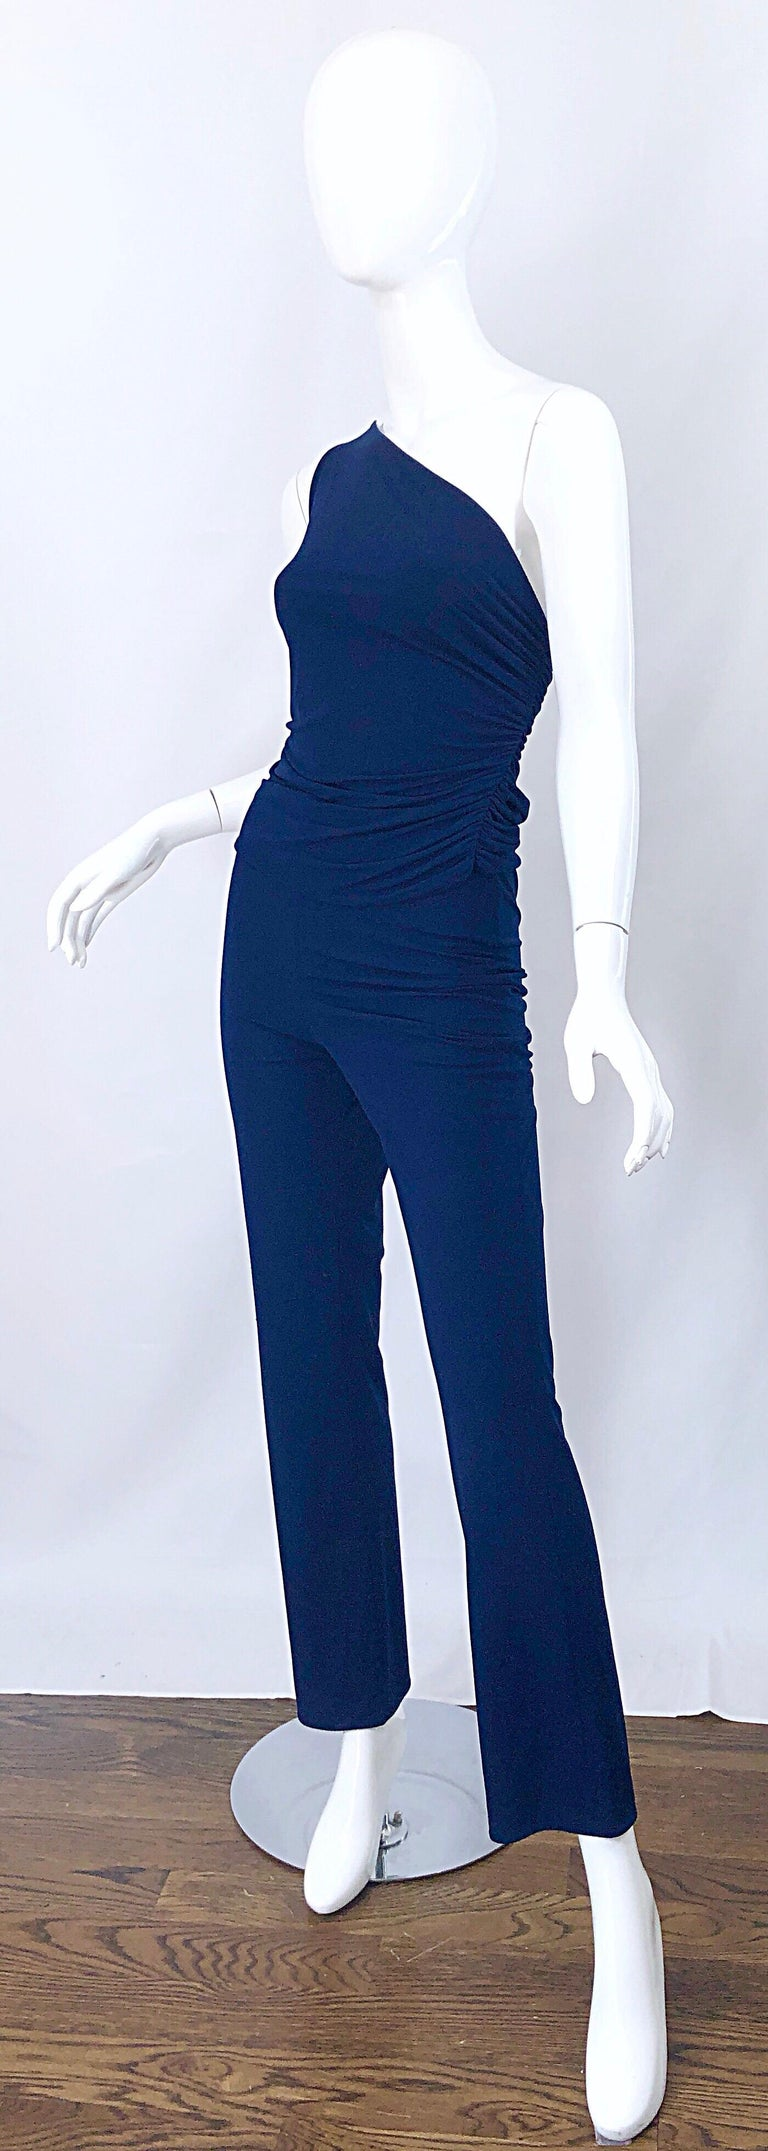 Vintage Norma Kamali OMO 1980s Navy Blue One Shoulder 80s Top and Pants Jumpsuit For Sale 2